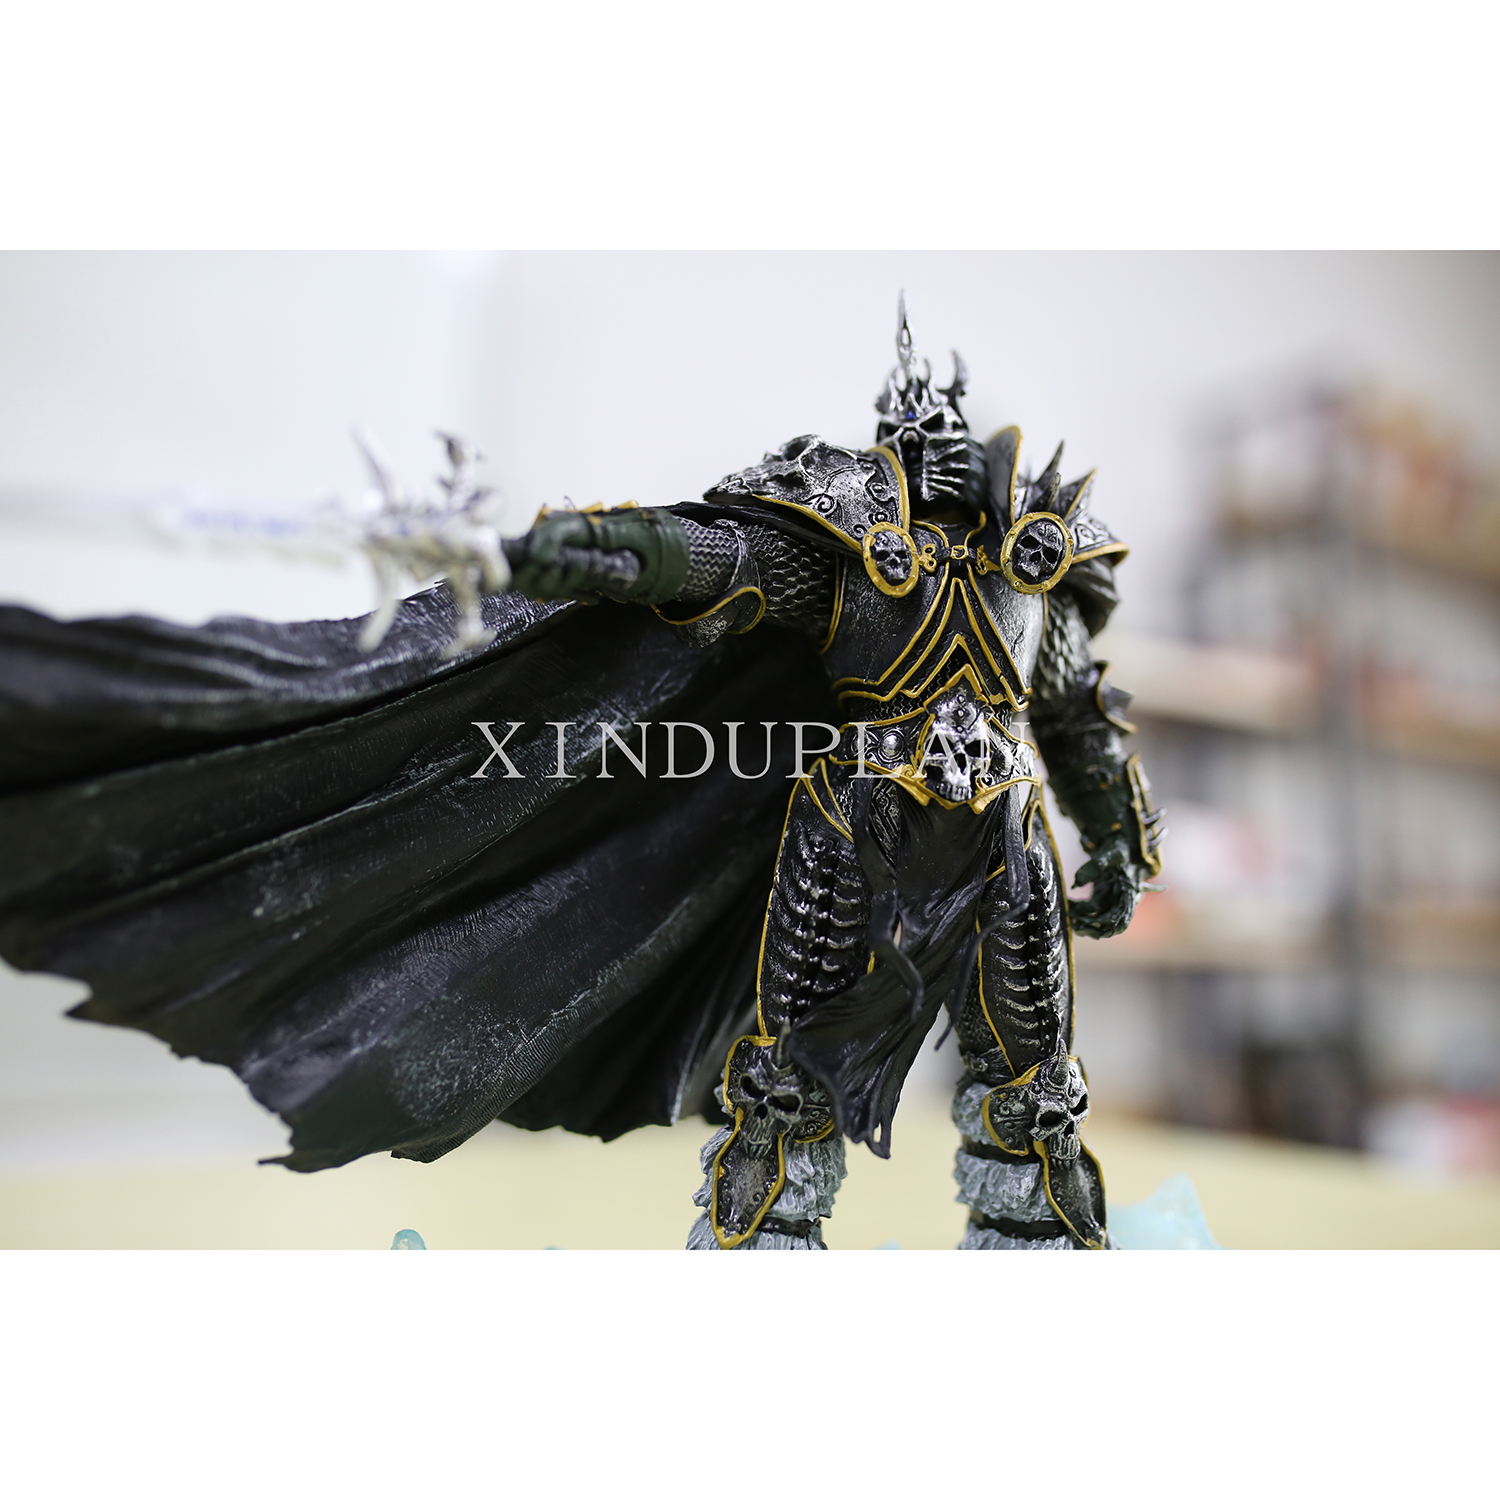 XINDUPLAN NEW Dota 2 Arthas Menethil Lich King Anime Action Figure Toys Cartoon Game 21cm PVC Kids Collection Model 0319 street fighter v chun li bigboystoys with light action figure game toys pvc action figure collection model toys kids for gift